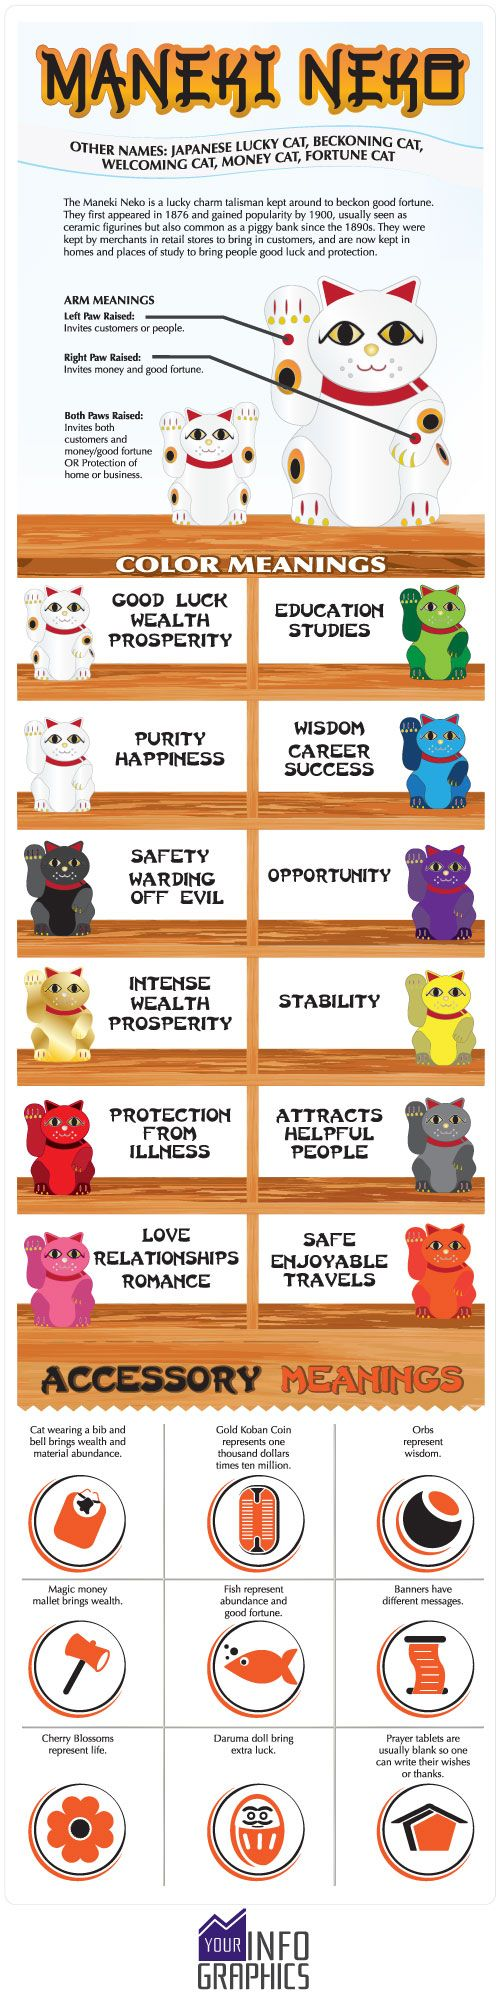 Maneki Neko (Lucky Cat) Infographic